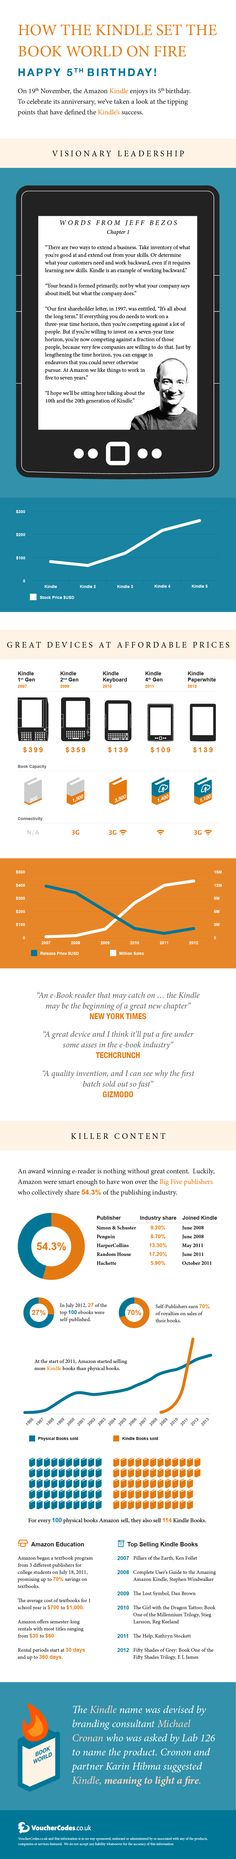 On 19th November, the Amazon Kindle celebrates its 5th birthday. Facing a healthy dose of scepticism from book lovers across the globe, the Kindle's s